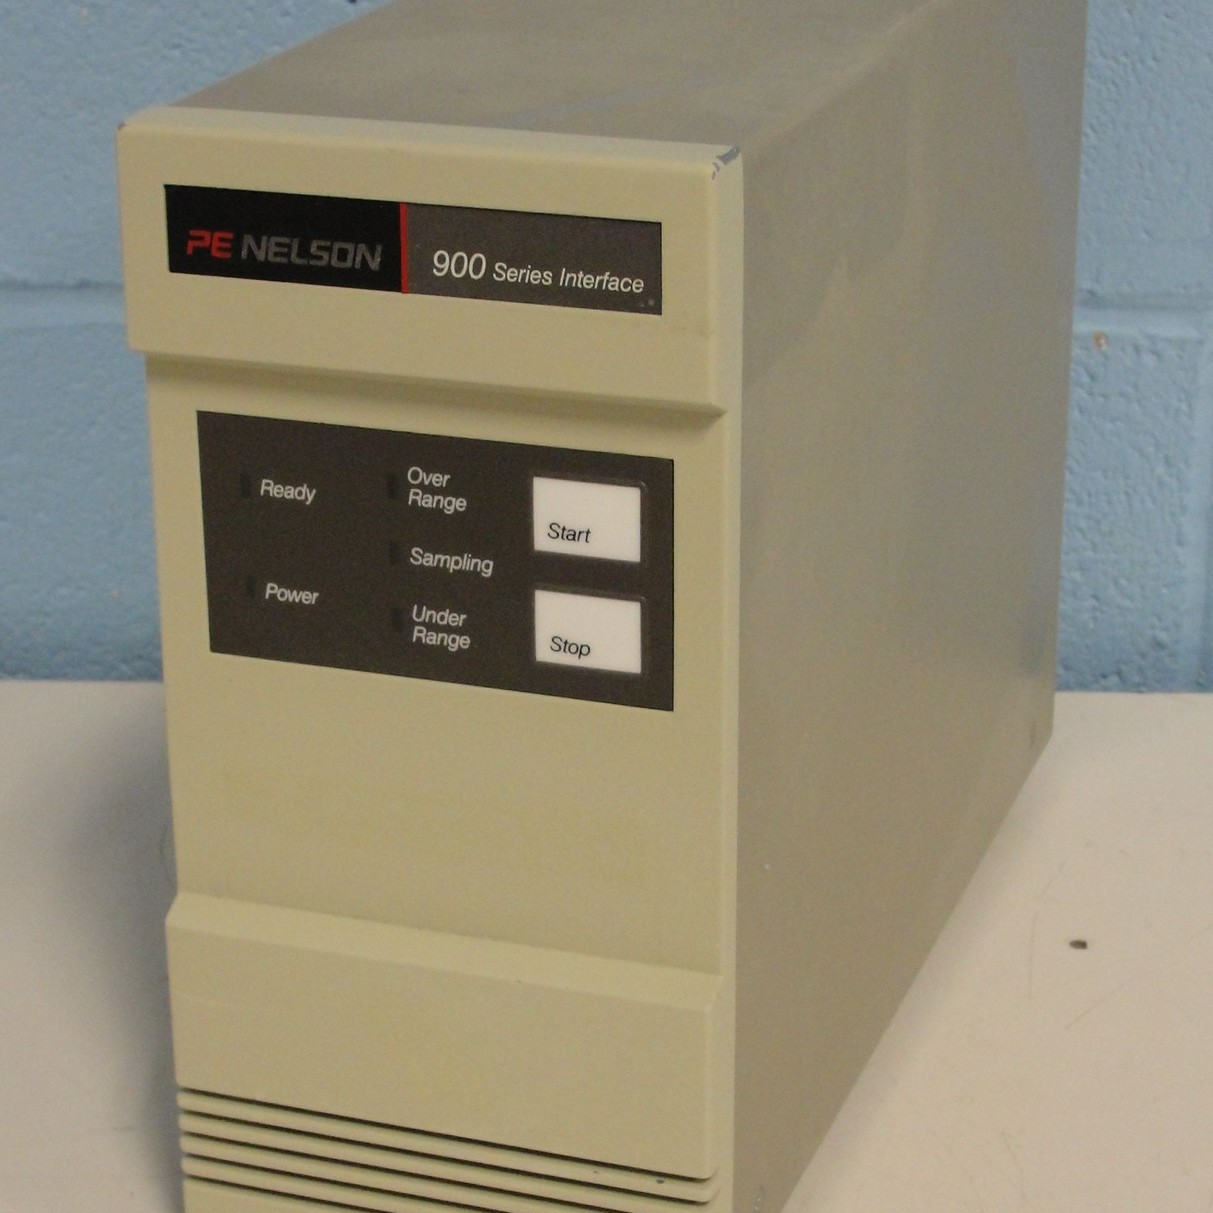 Perkin Elmer PE Nelson 900 Series Interface Model 950A Image